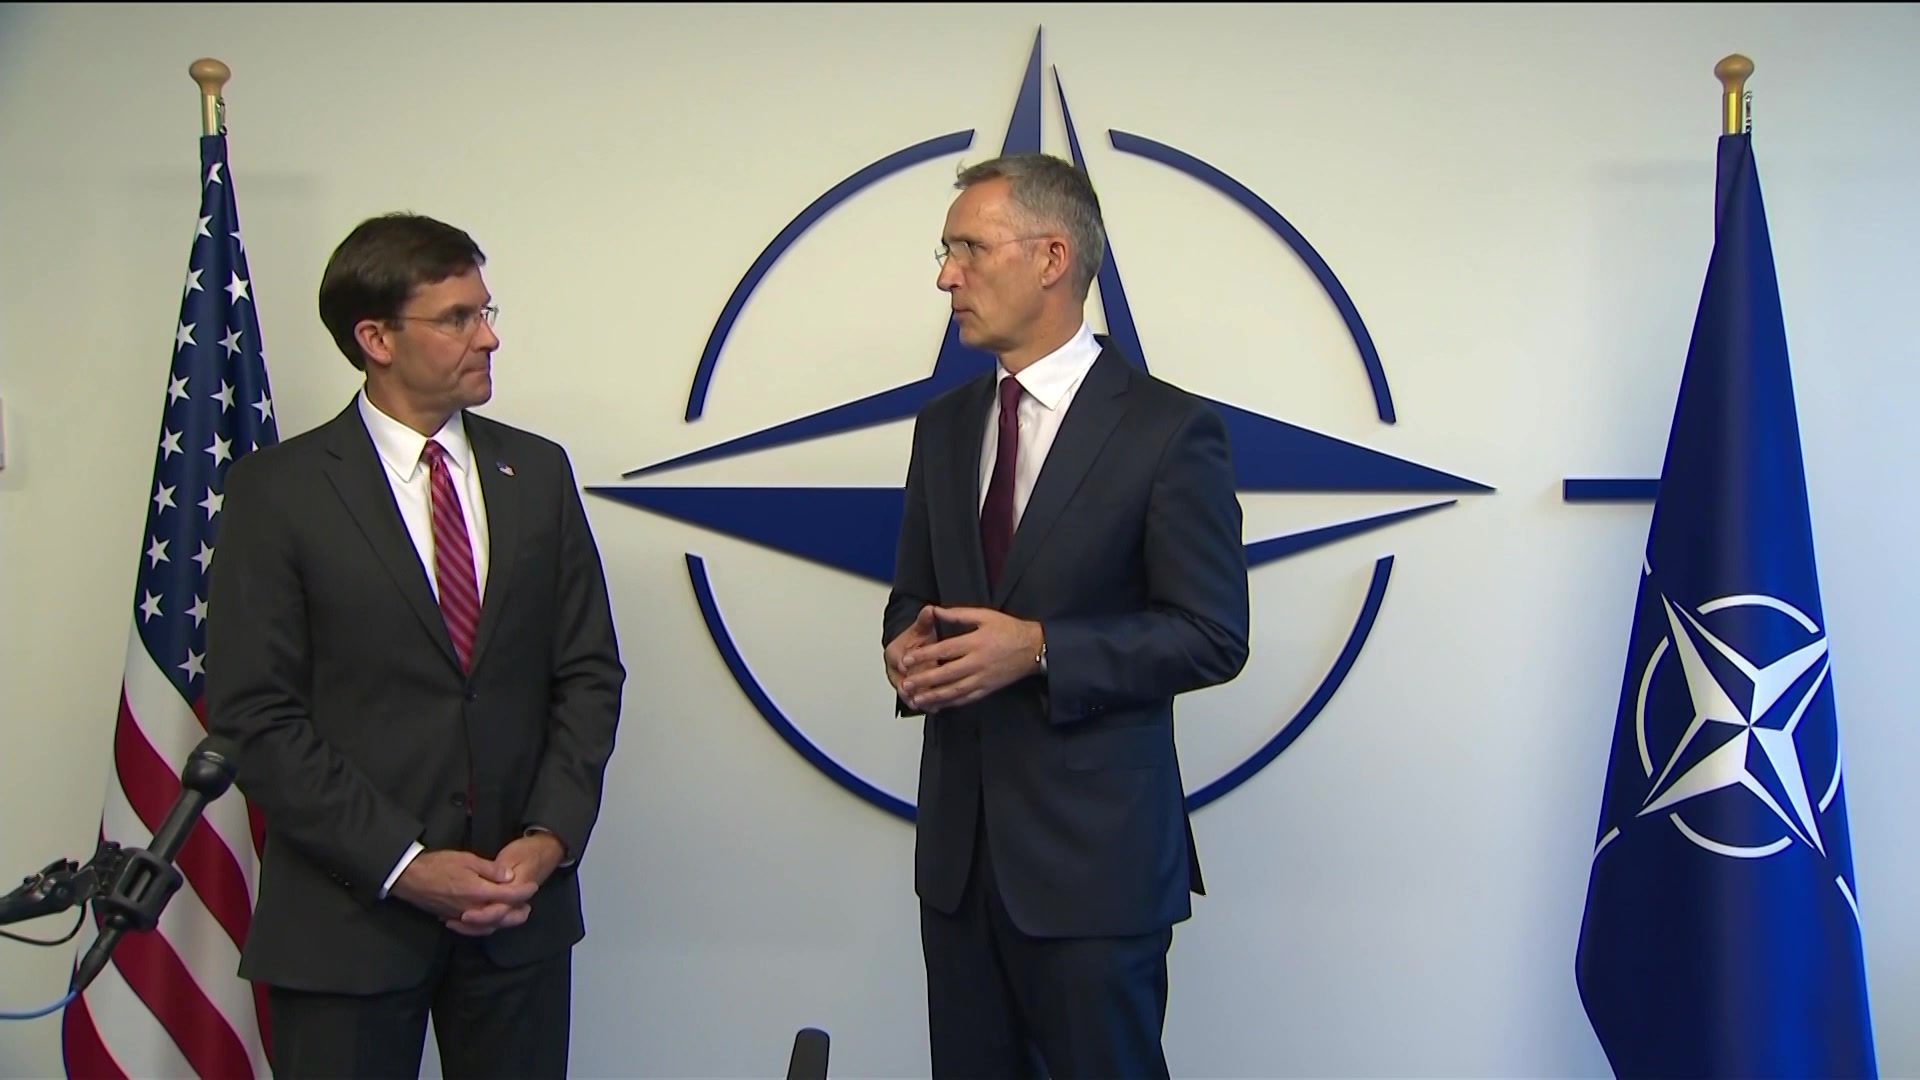 Defense Secretary Dr. Mark T. Esper and NATO Secretary General Jens Stoltenberg speak at the NATO defense ministerial conference, at the alliance's headquarters in Brussels, Oct. 24, 2019.